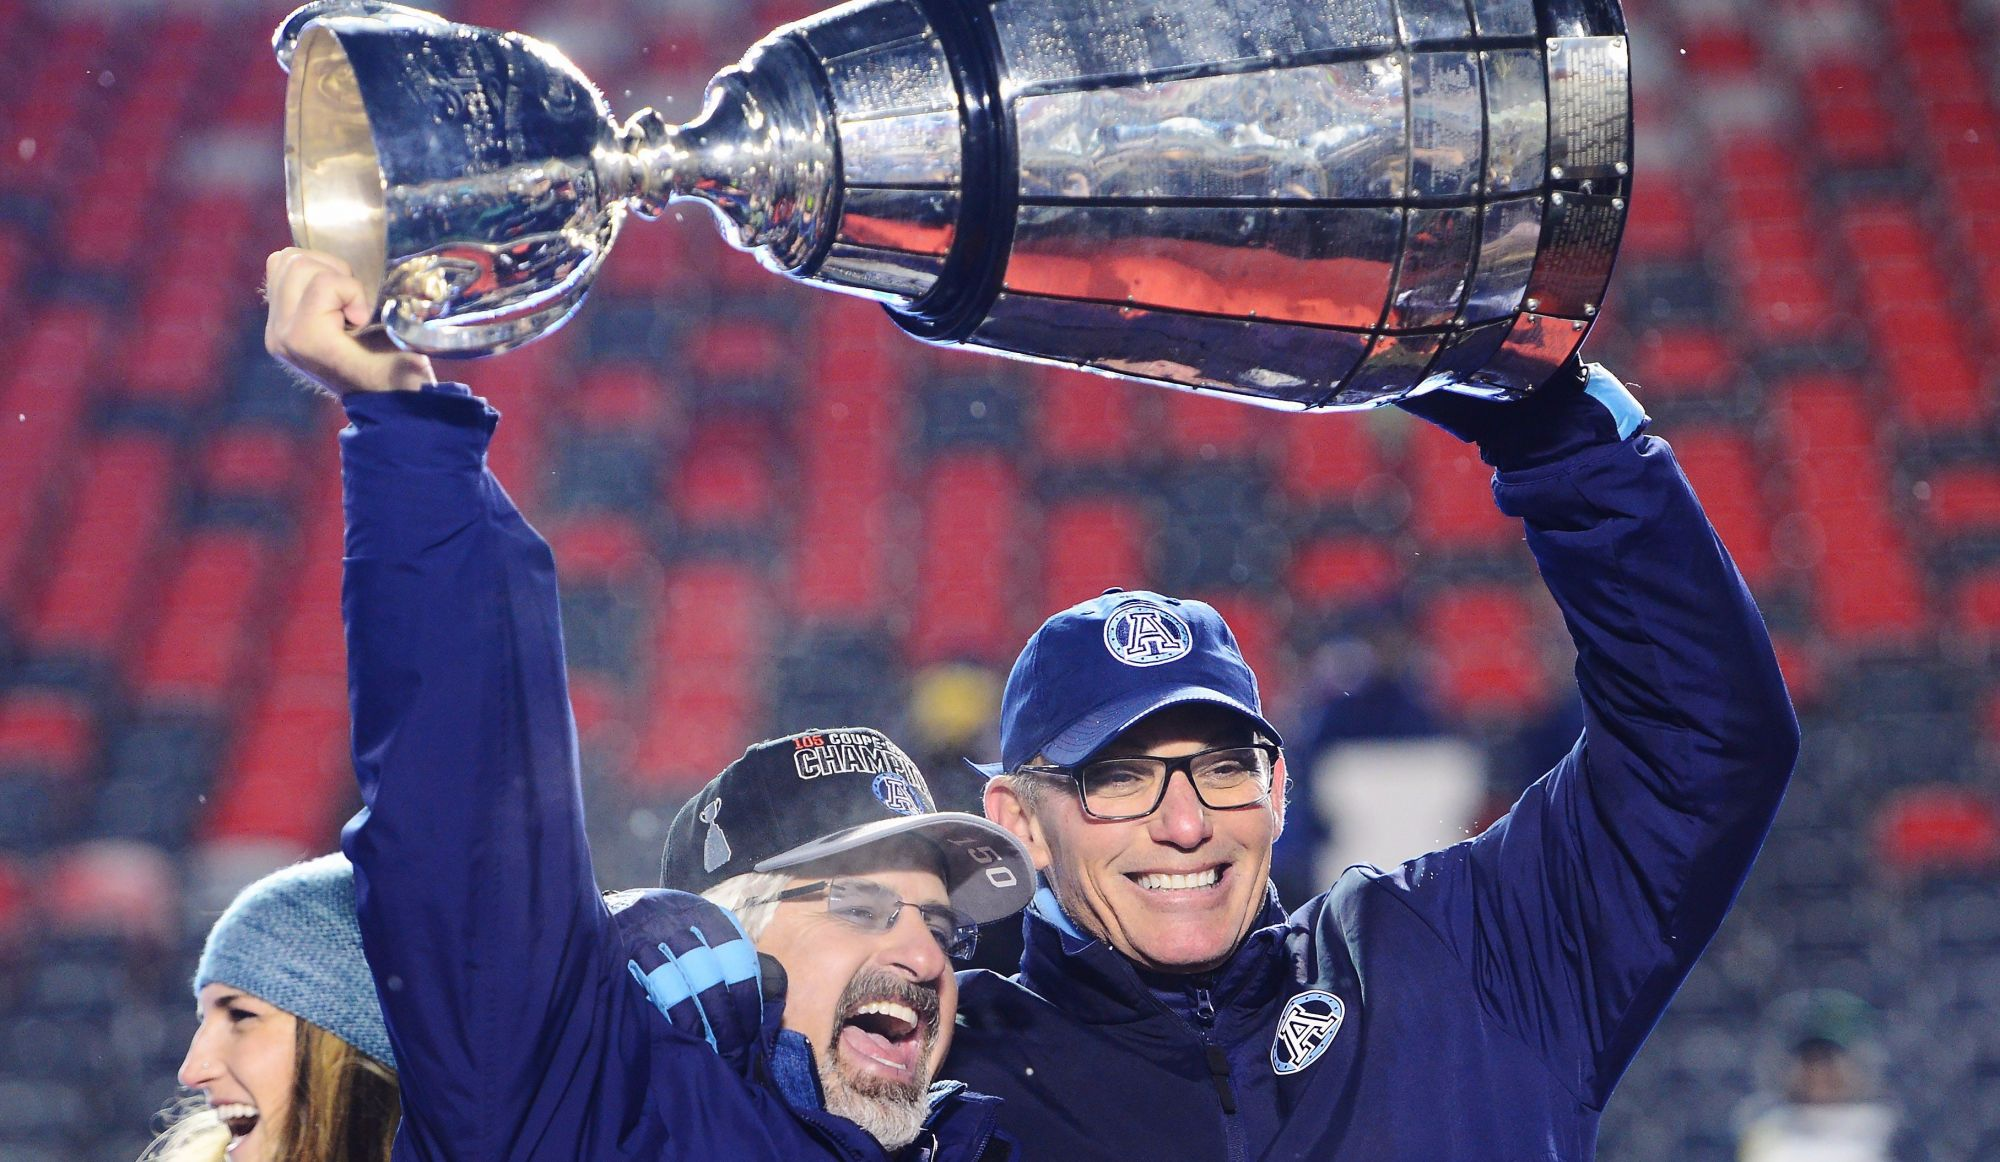 Le duo Trestman-Popp remet la main sur la Coupe Grey